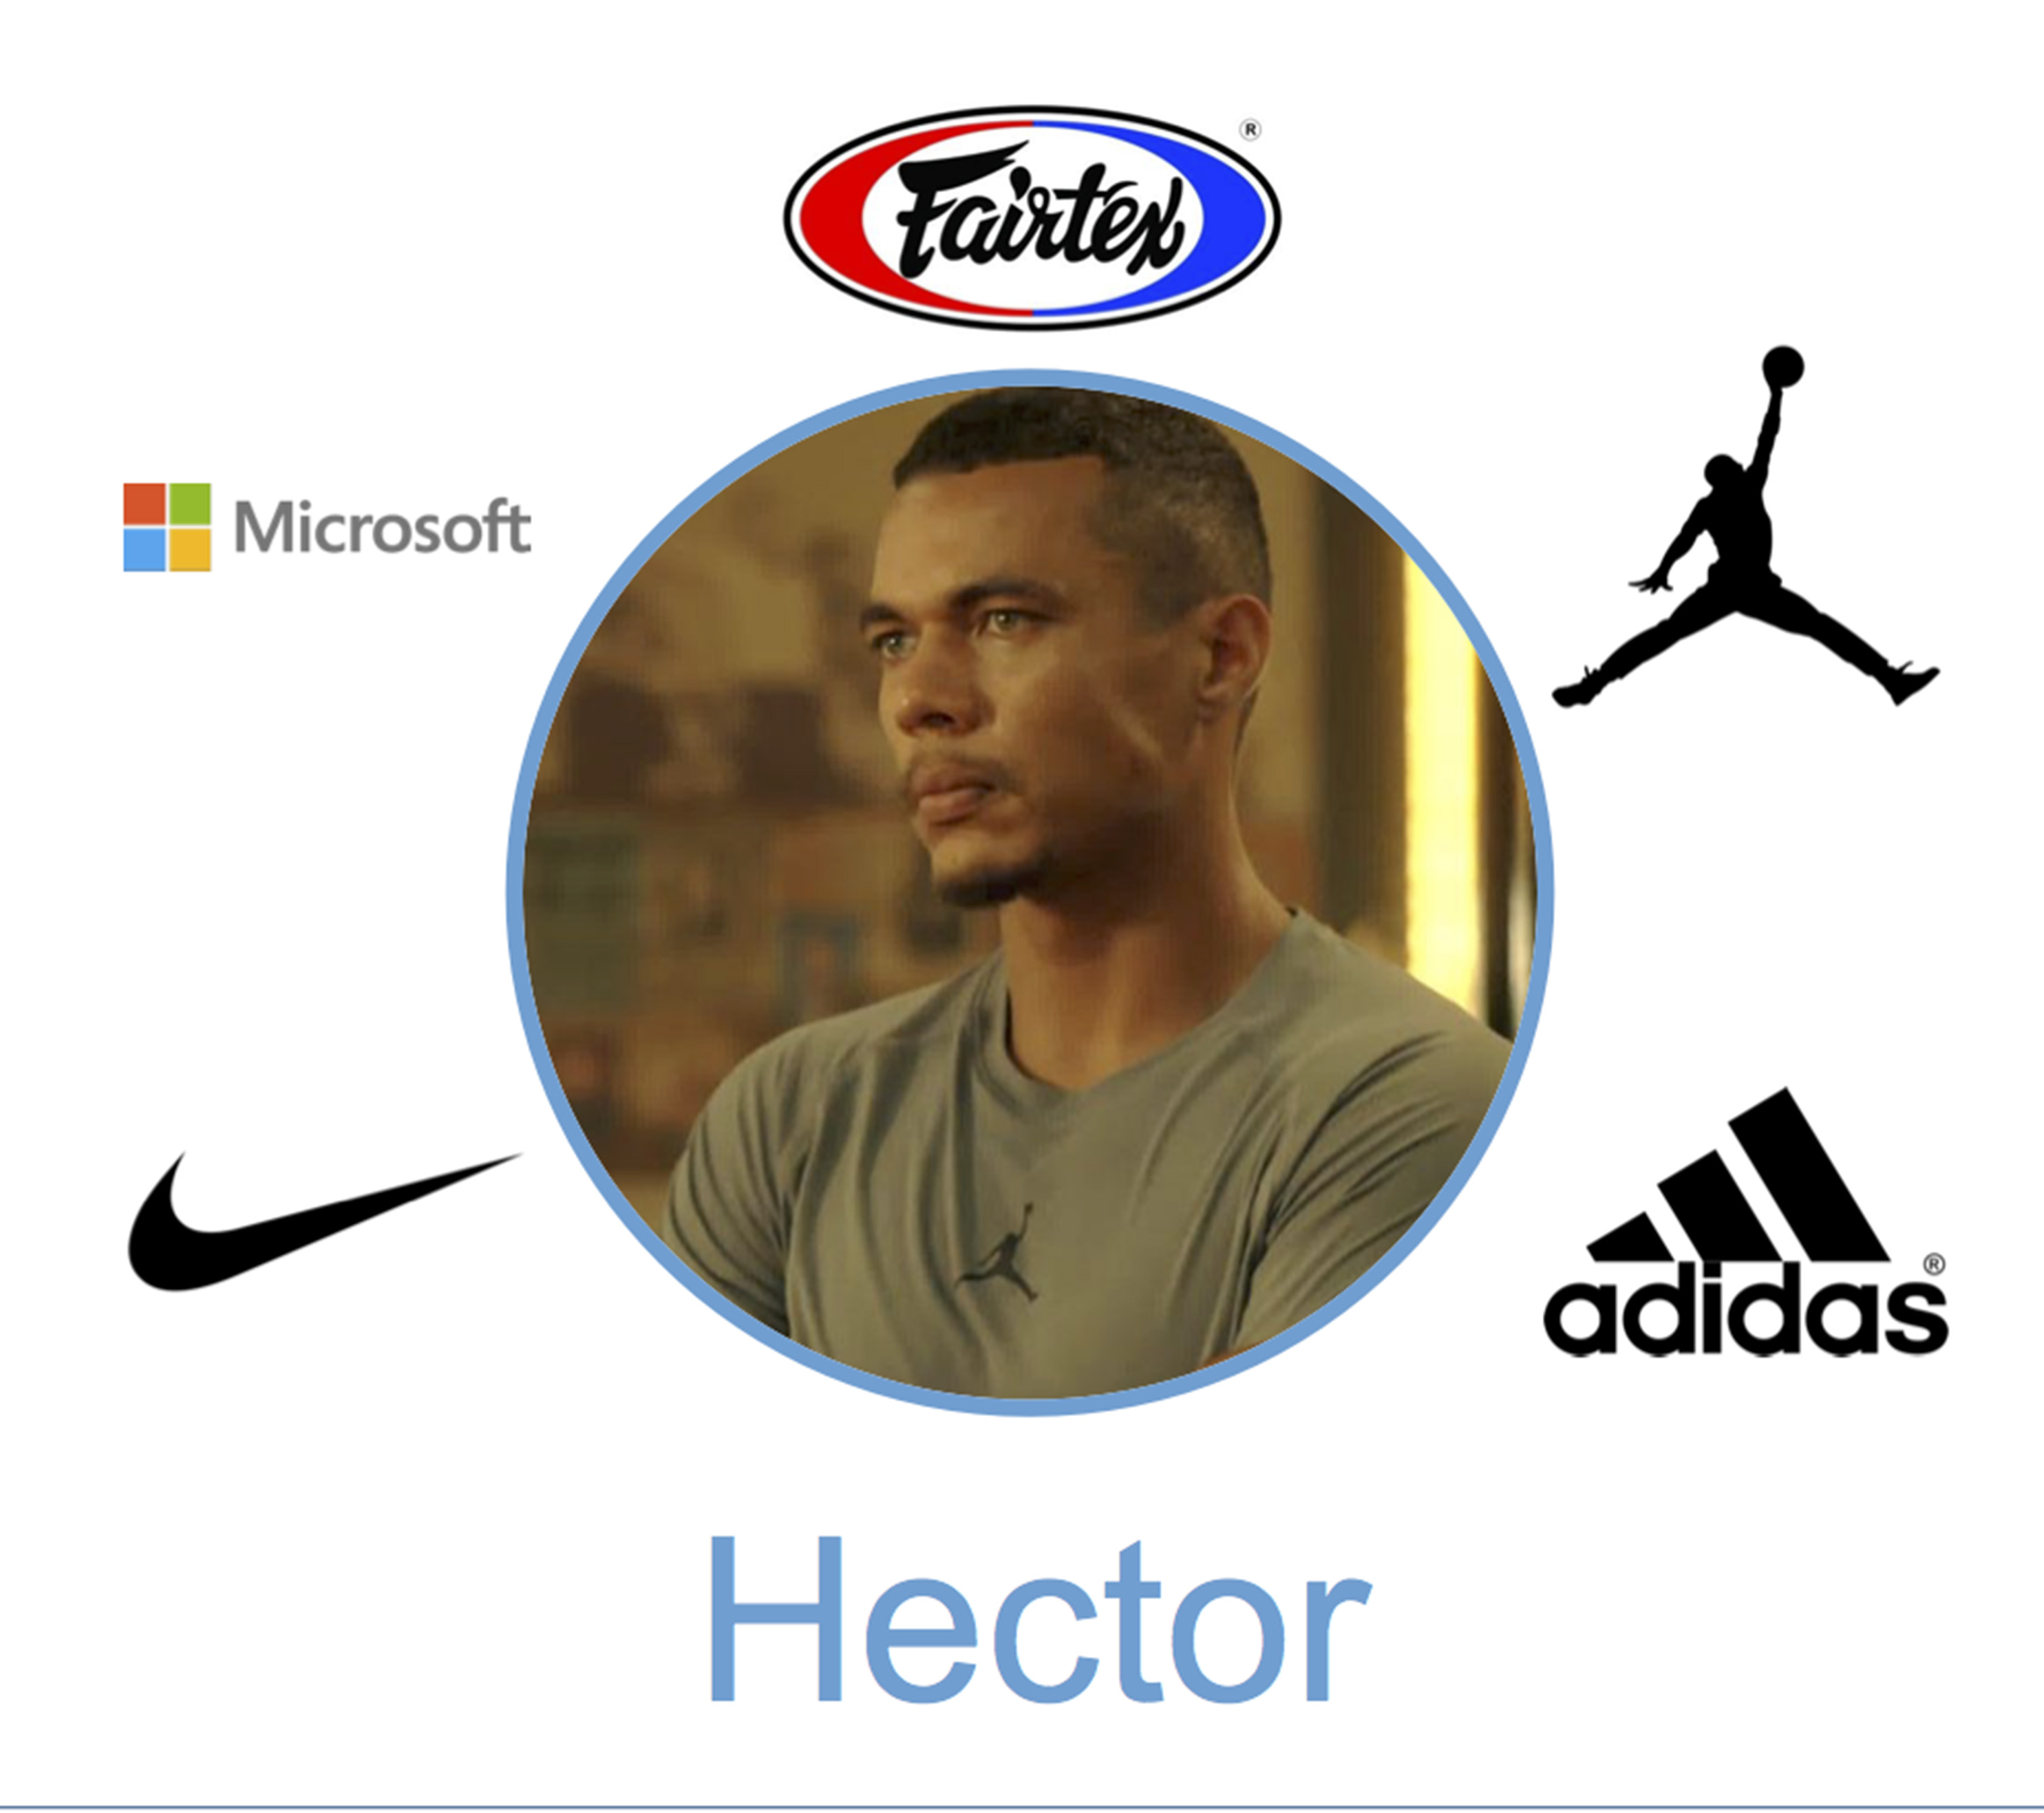 hector campos brands product placment ray donovan season 4 air jordan adidas fairtex microsoft nike